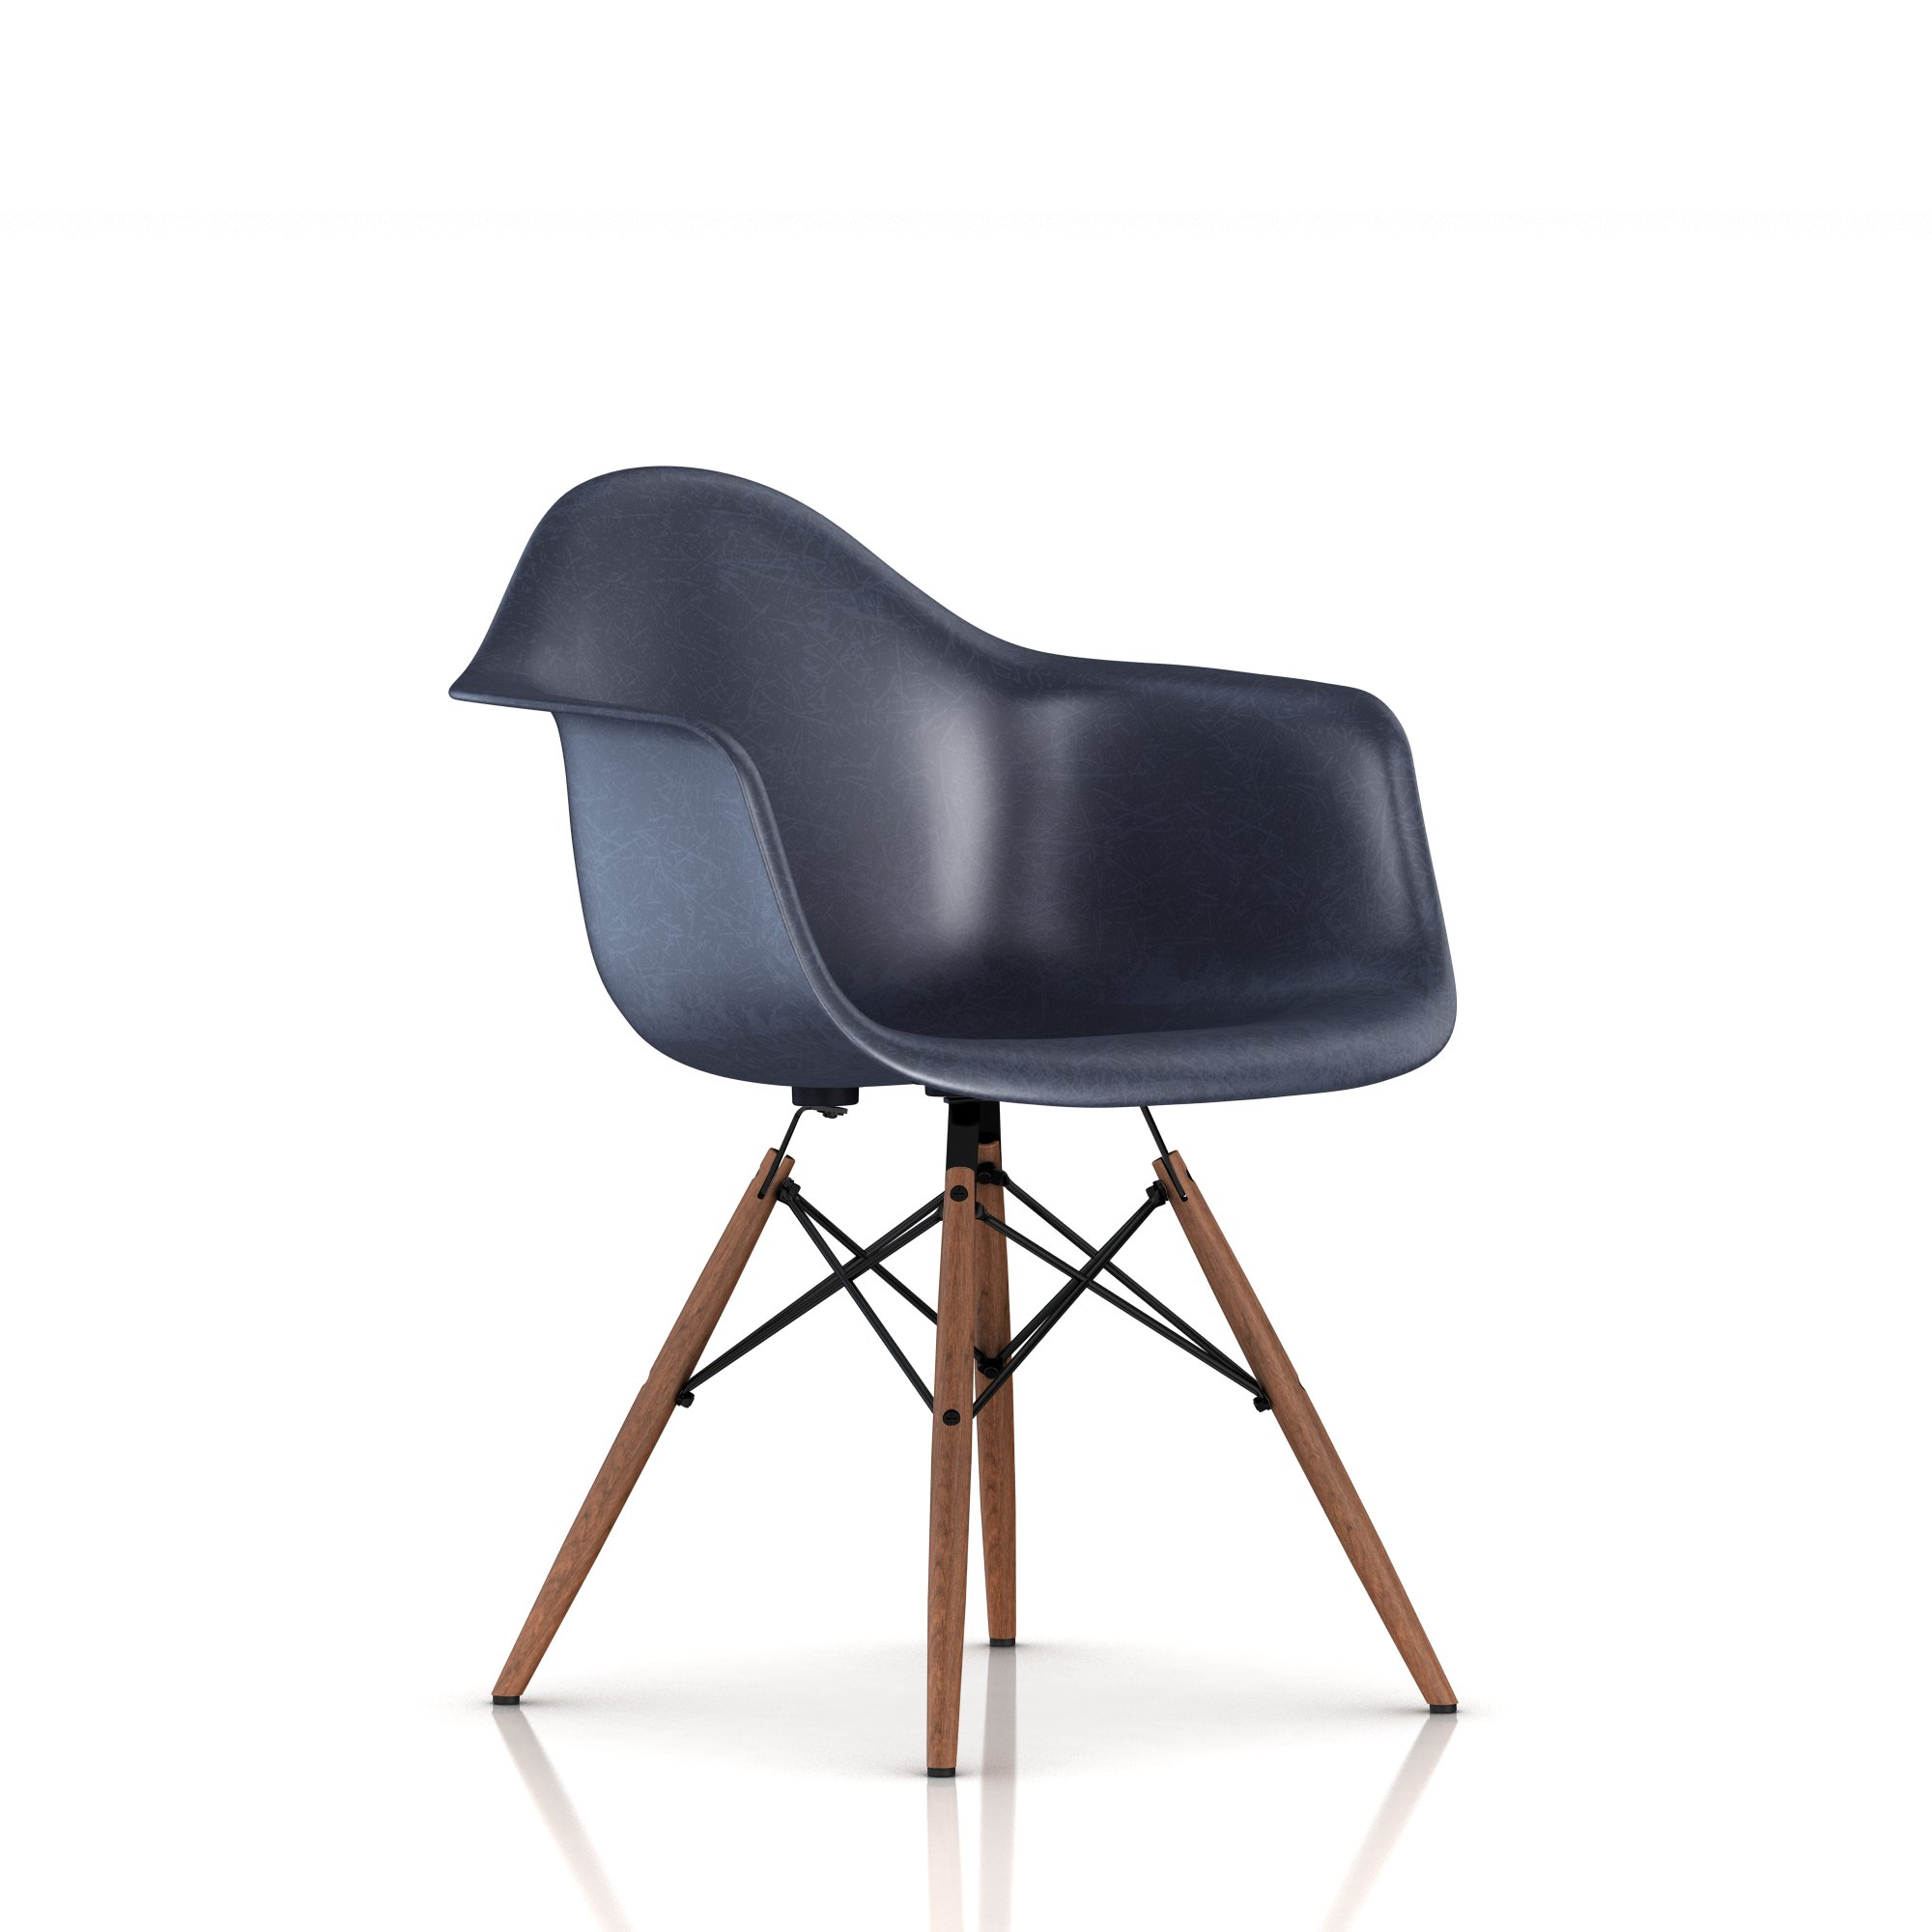 Navy Blue + Walnut leg